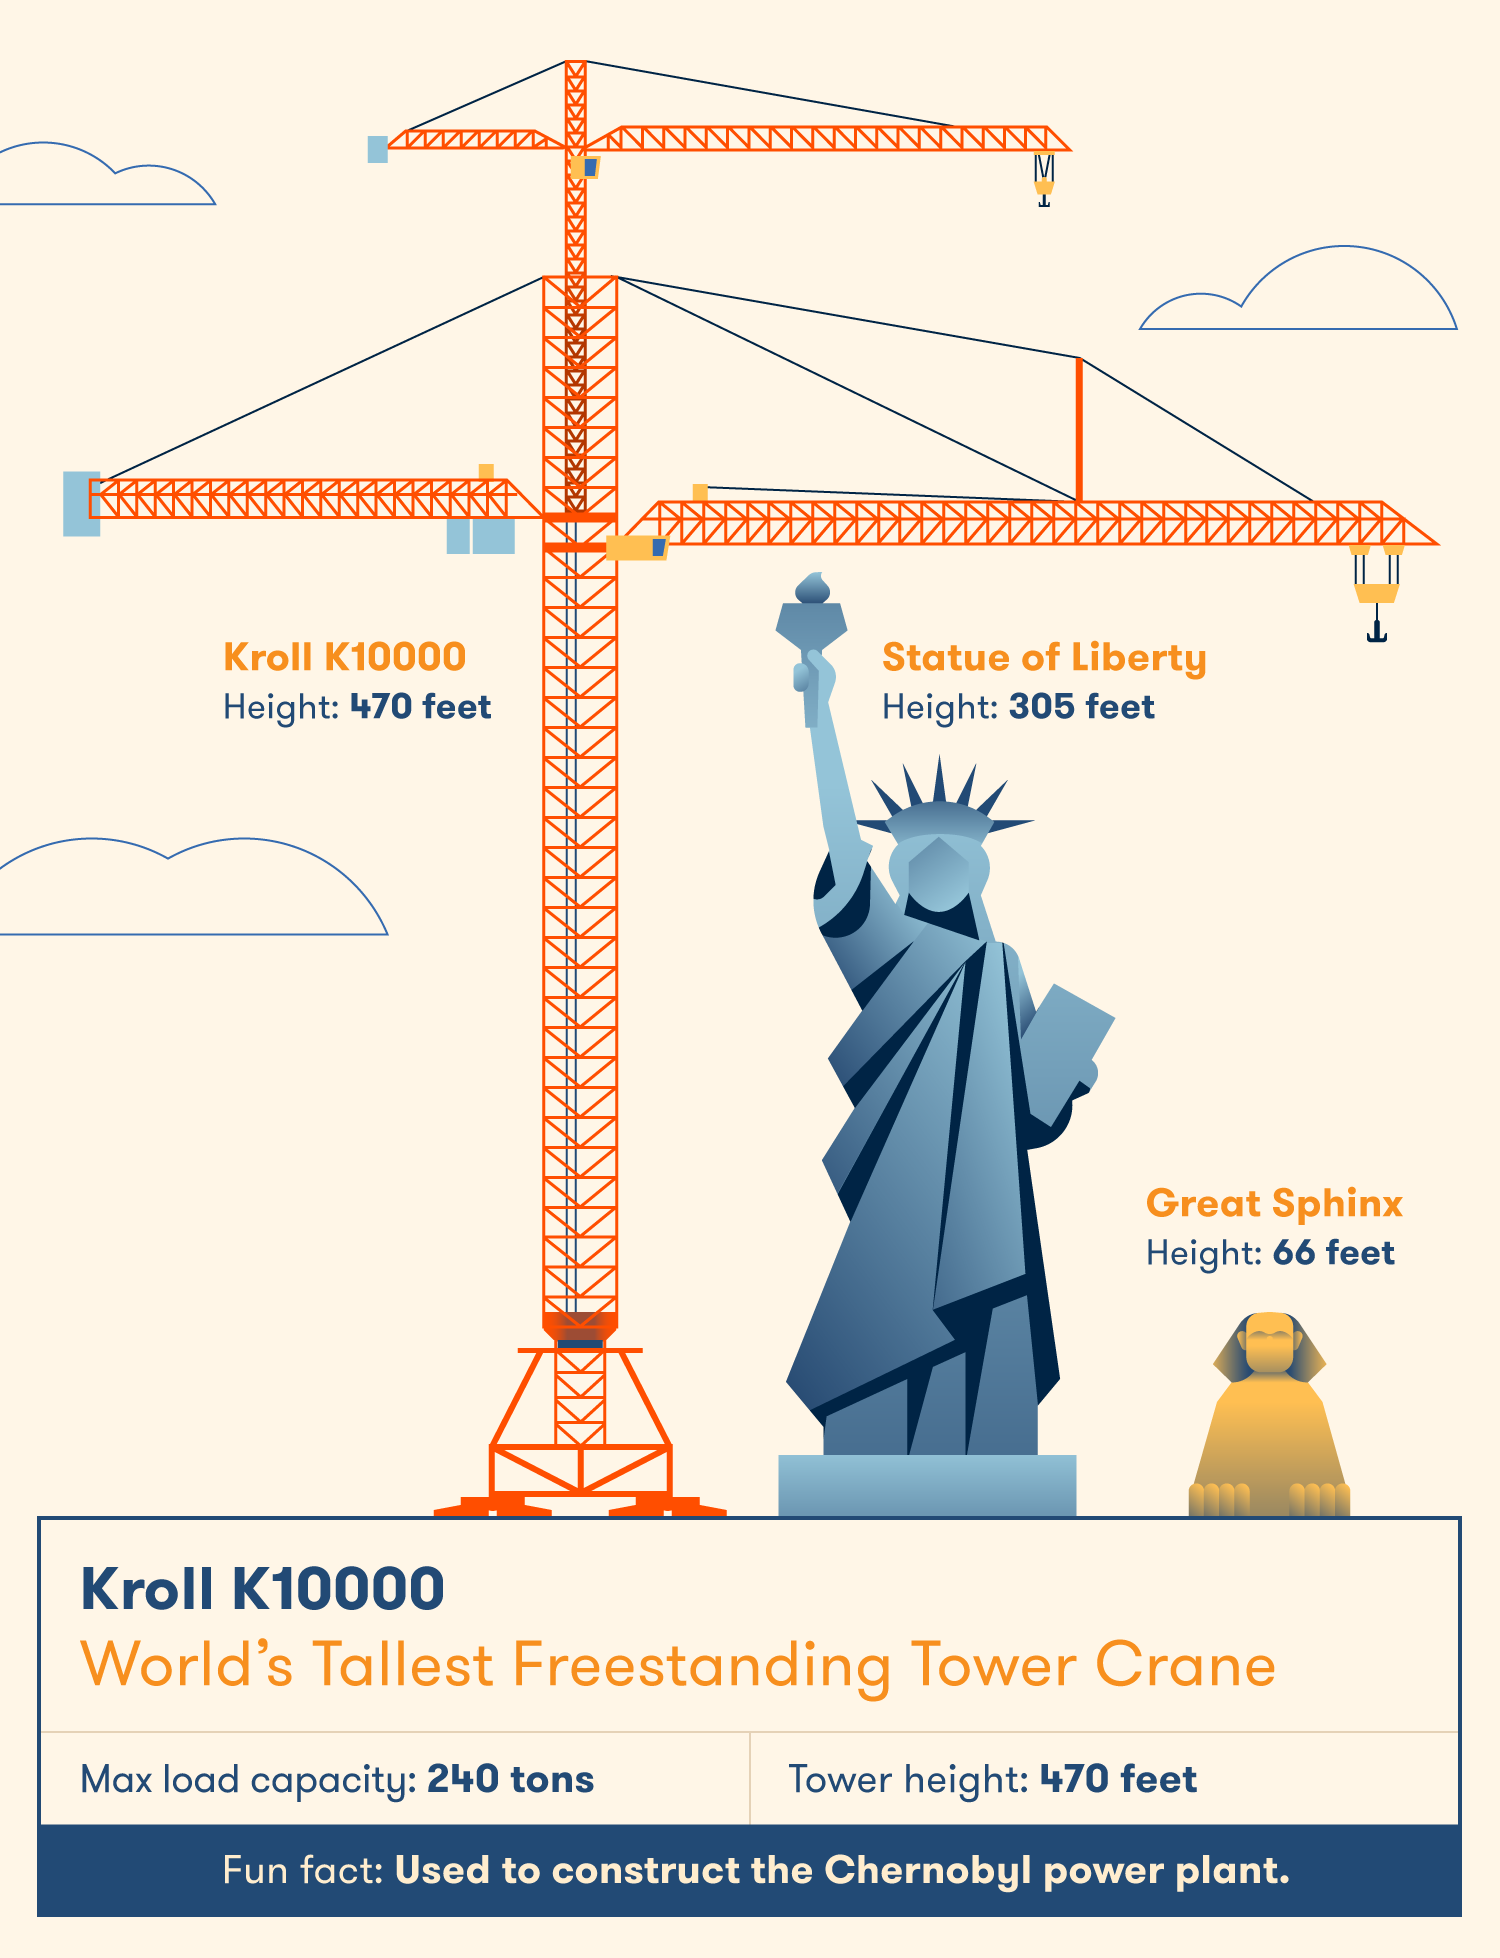 The Kroll K1000 is the world's tallest freestanding tower crane.